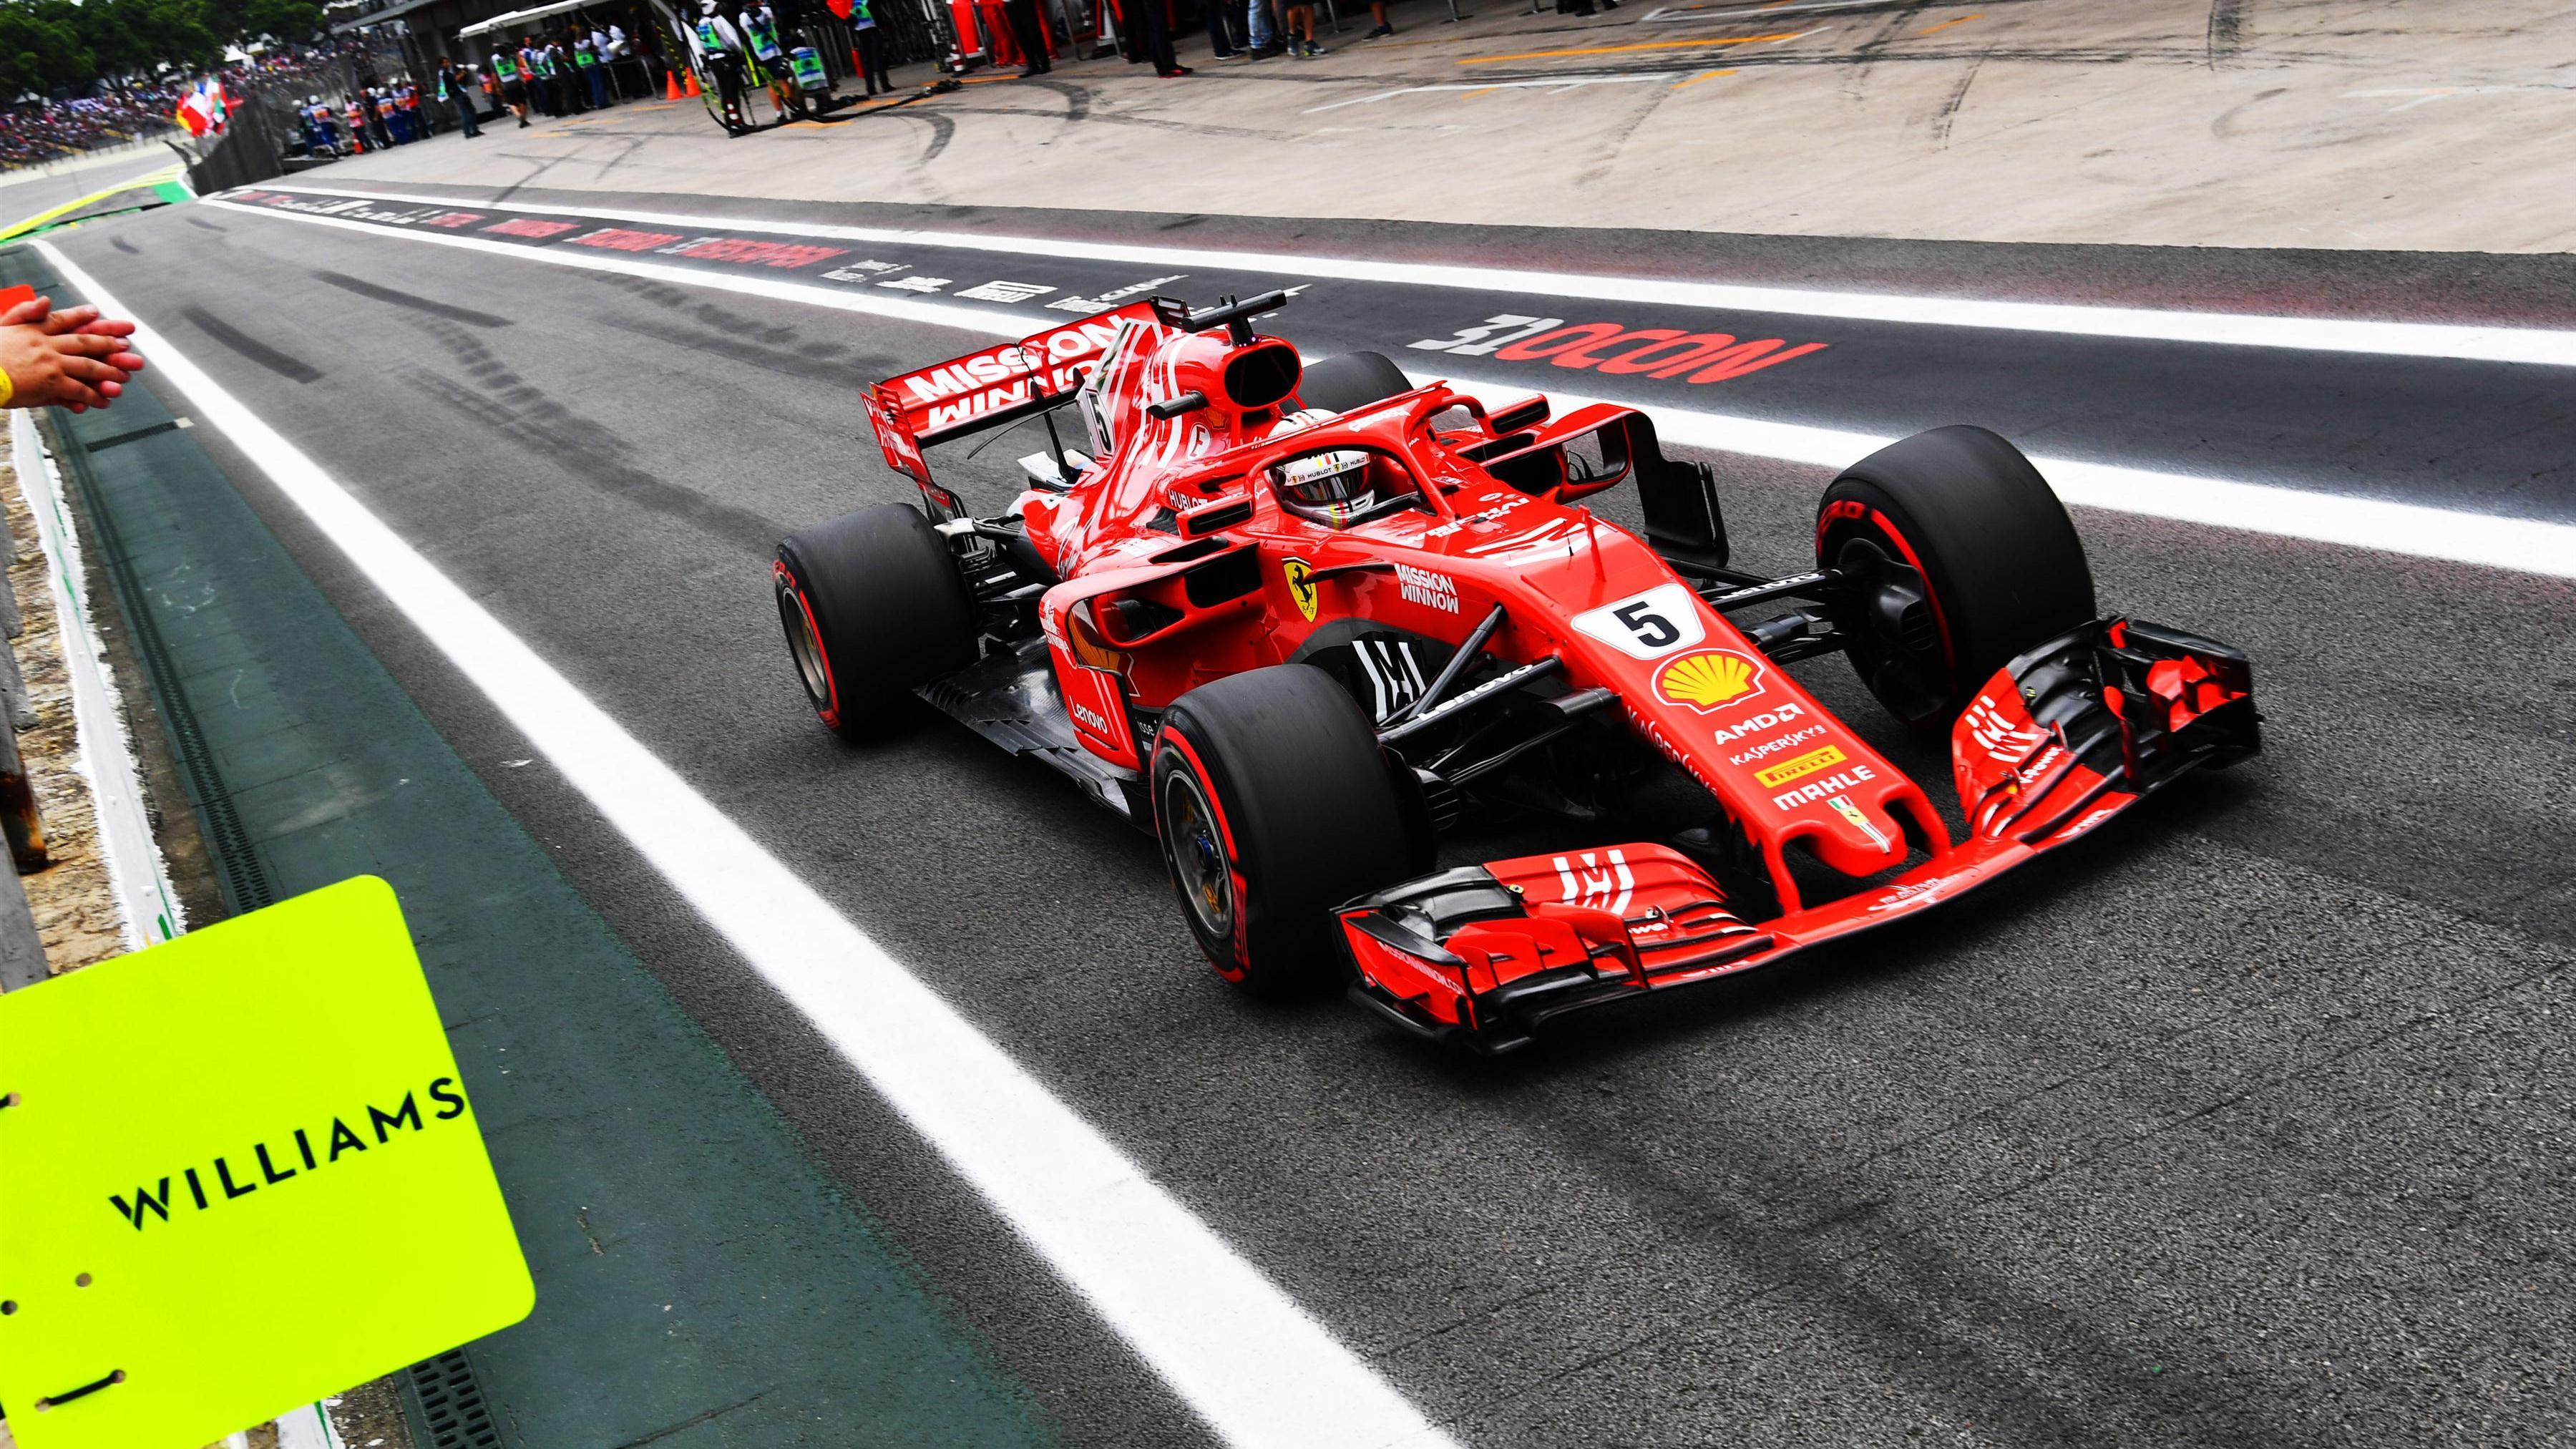 brazilian grand prix 2018 free practice 3 report vettel leads hamilton formula 1. Black Bedroom Furniture Sets. Home Design Ideas